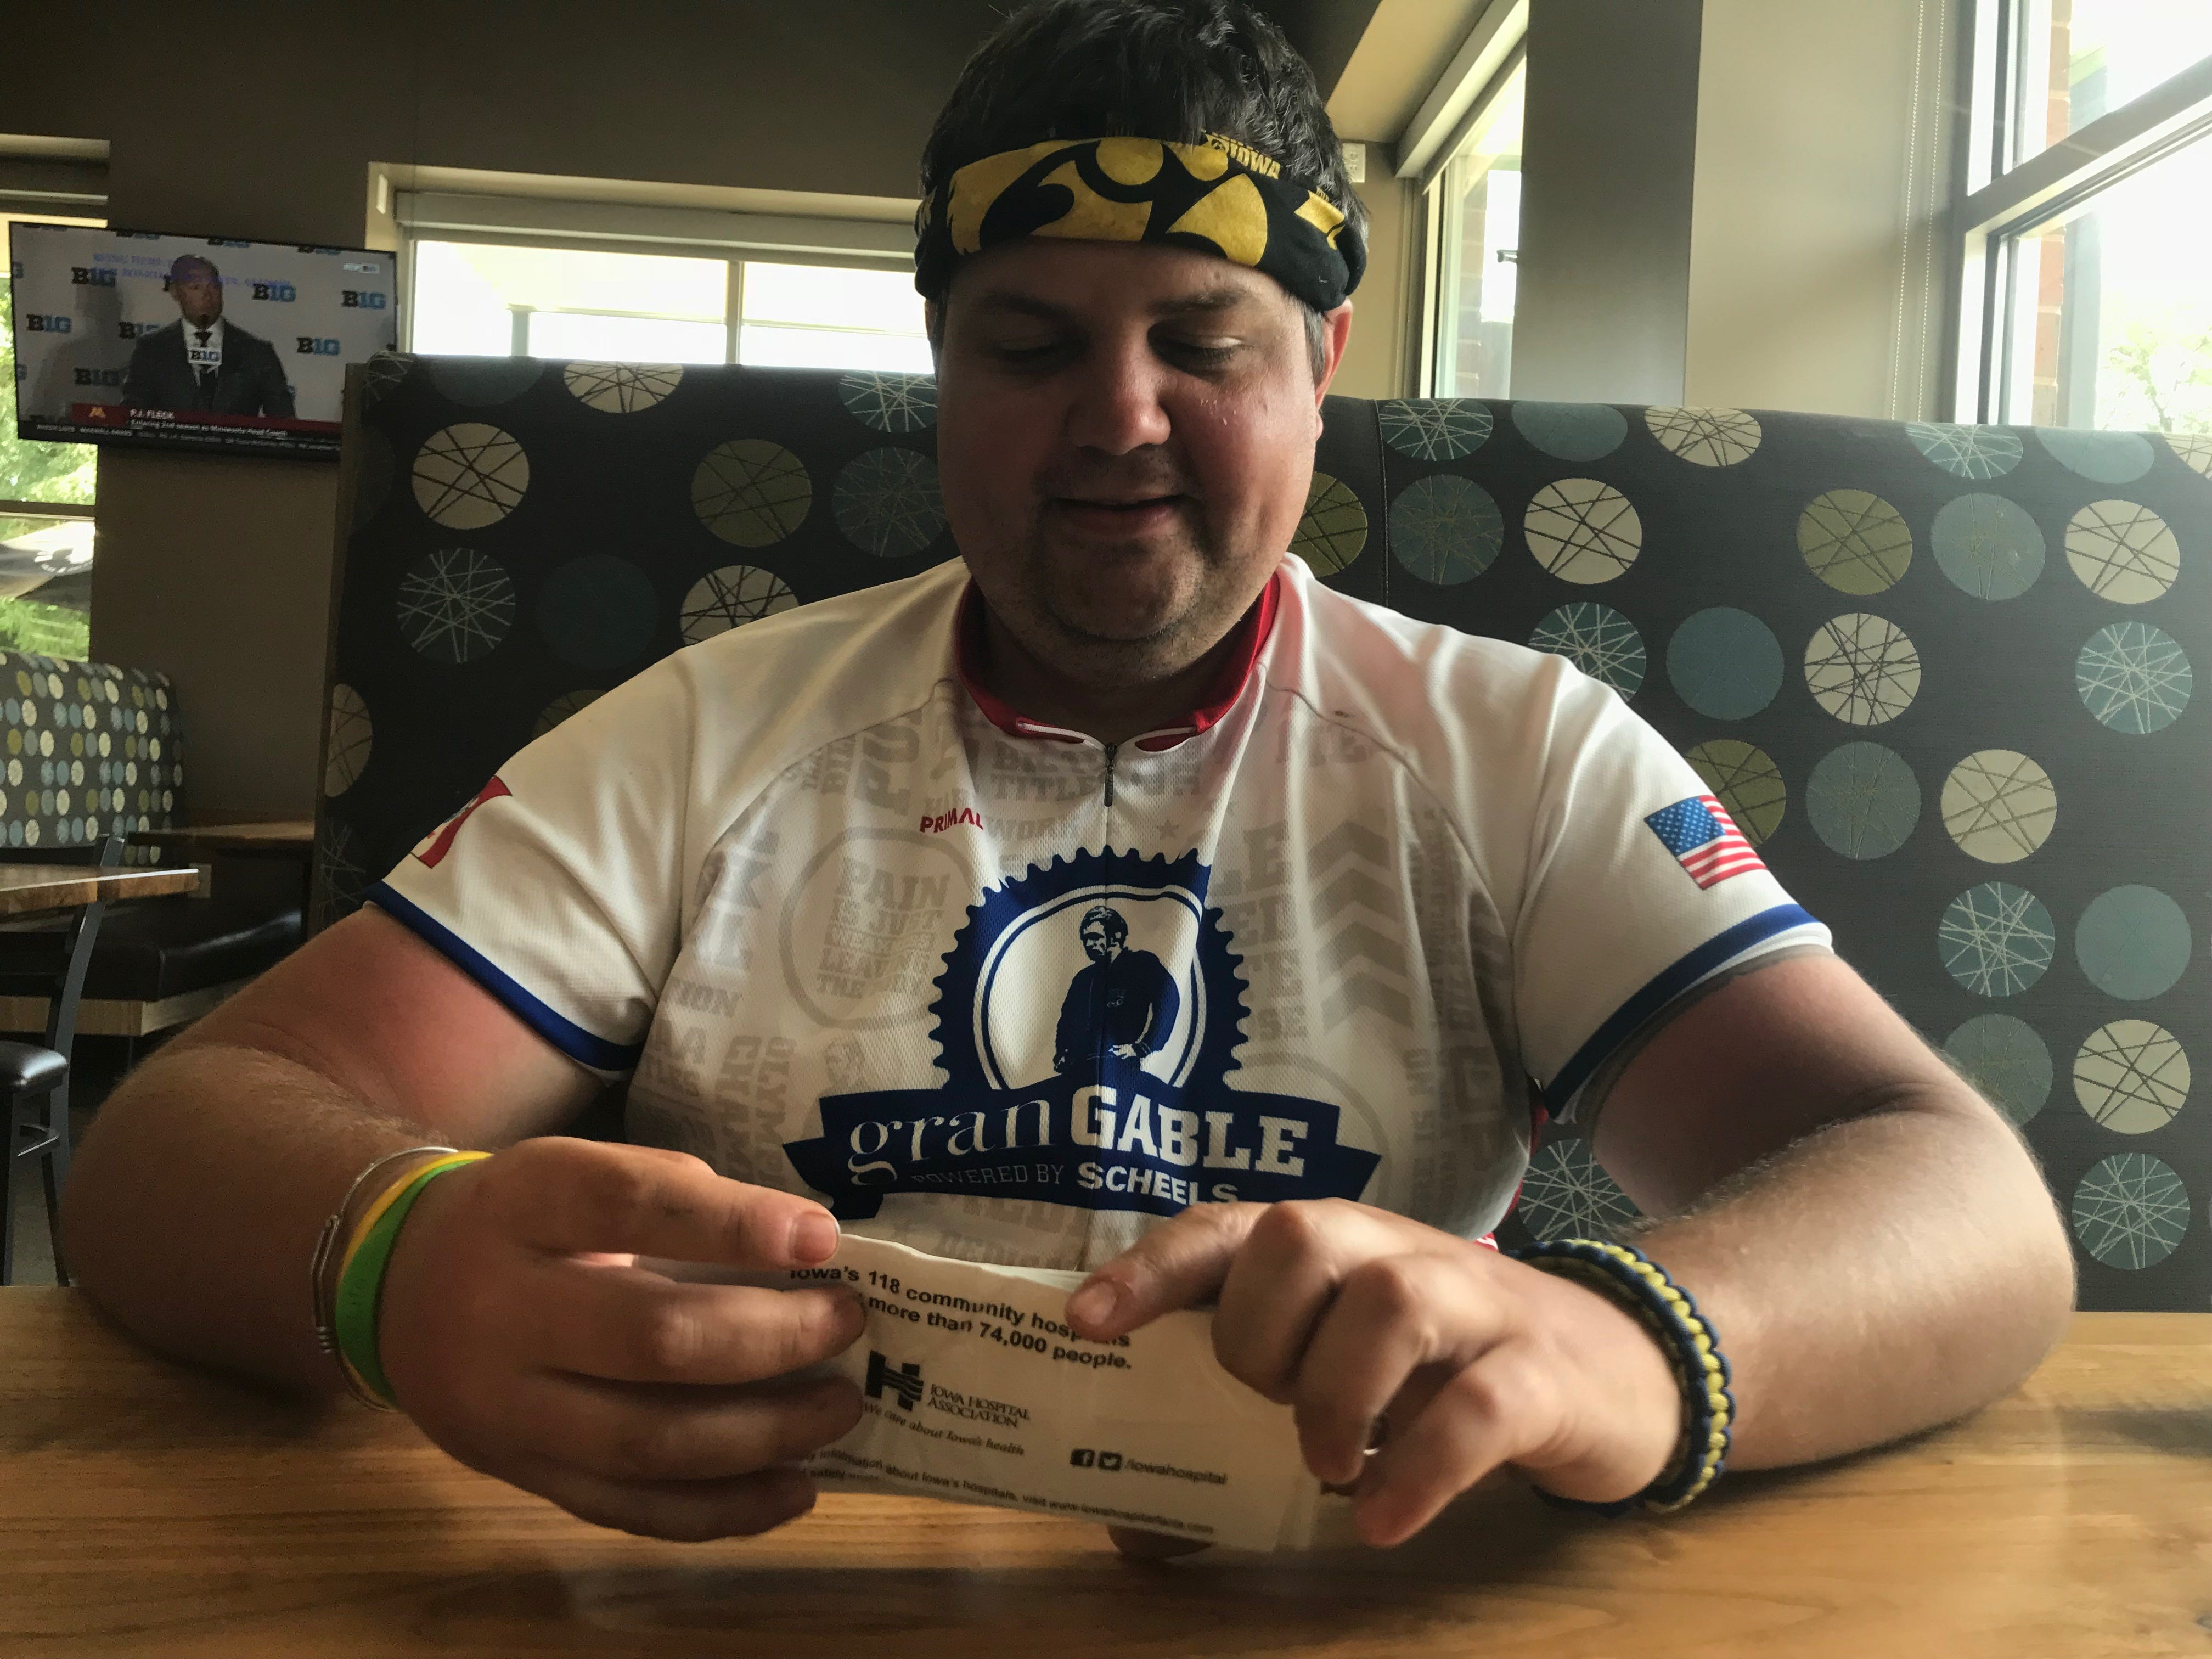 Far from the booze fest it is for some, RAGBRAI represents a sober feat to this Coralville man